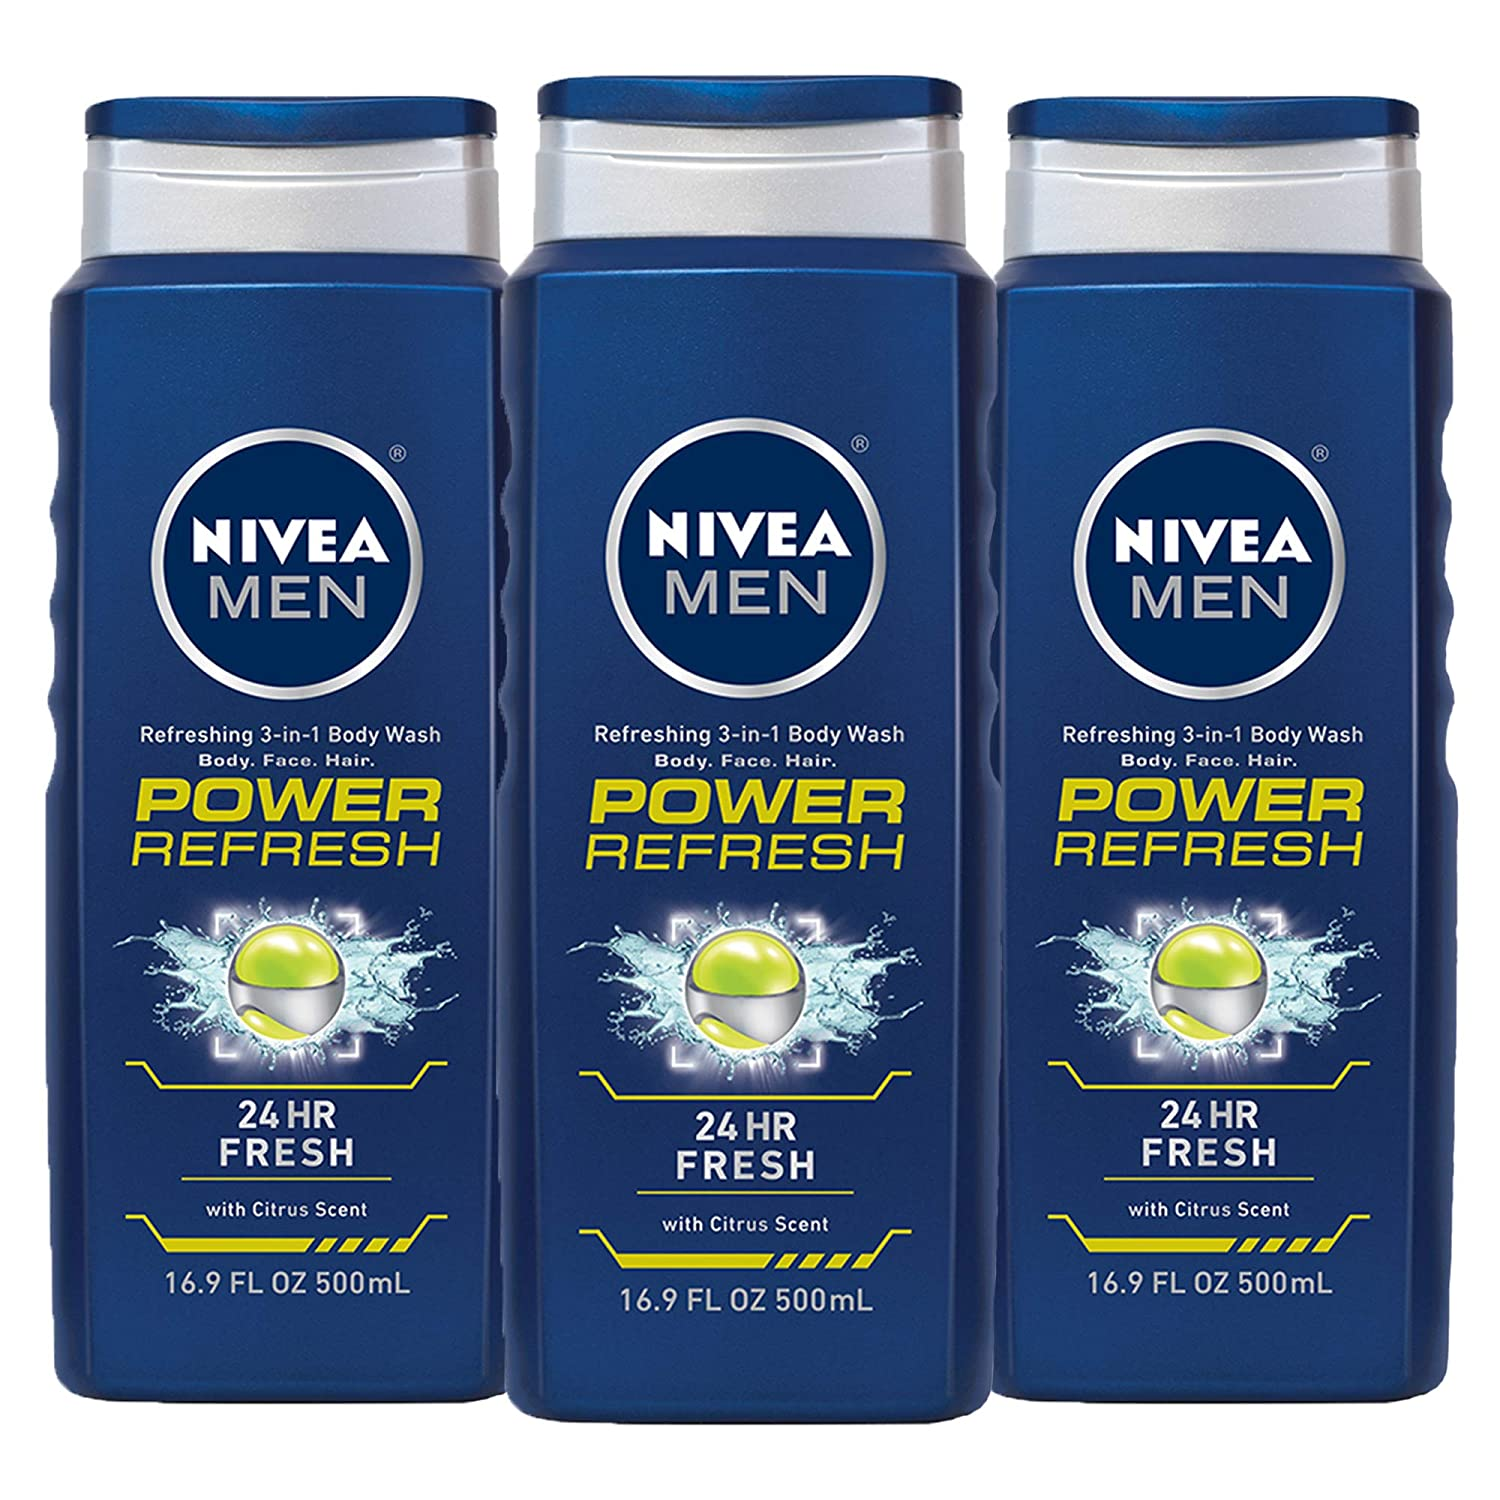 NIVEA Men Power Refresh Body 3-in-1 Wash - Face, Body, Hair with Citrus Scent - 16.9 fl. oz. Bottle (Pack of 3)